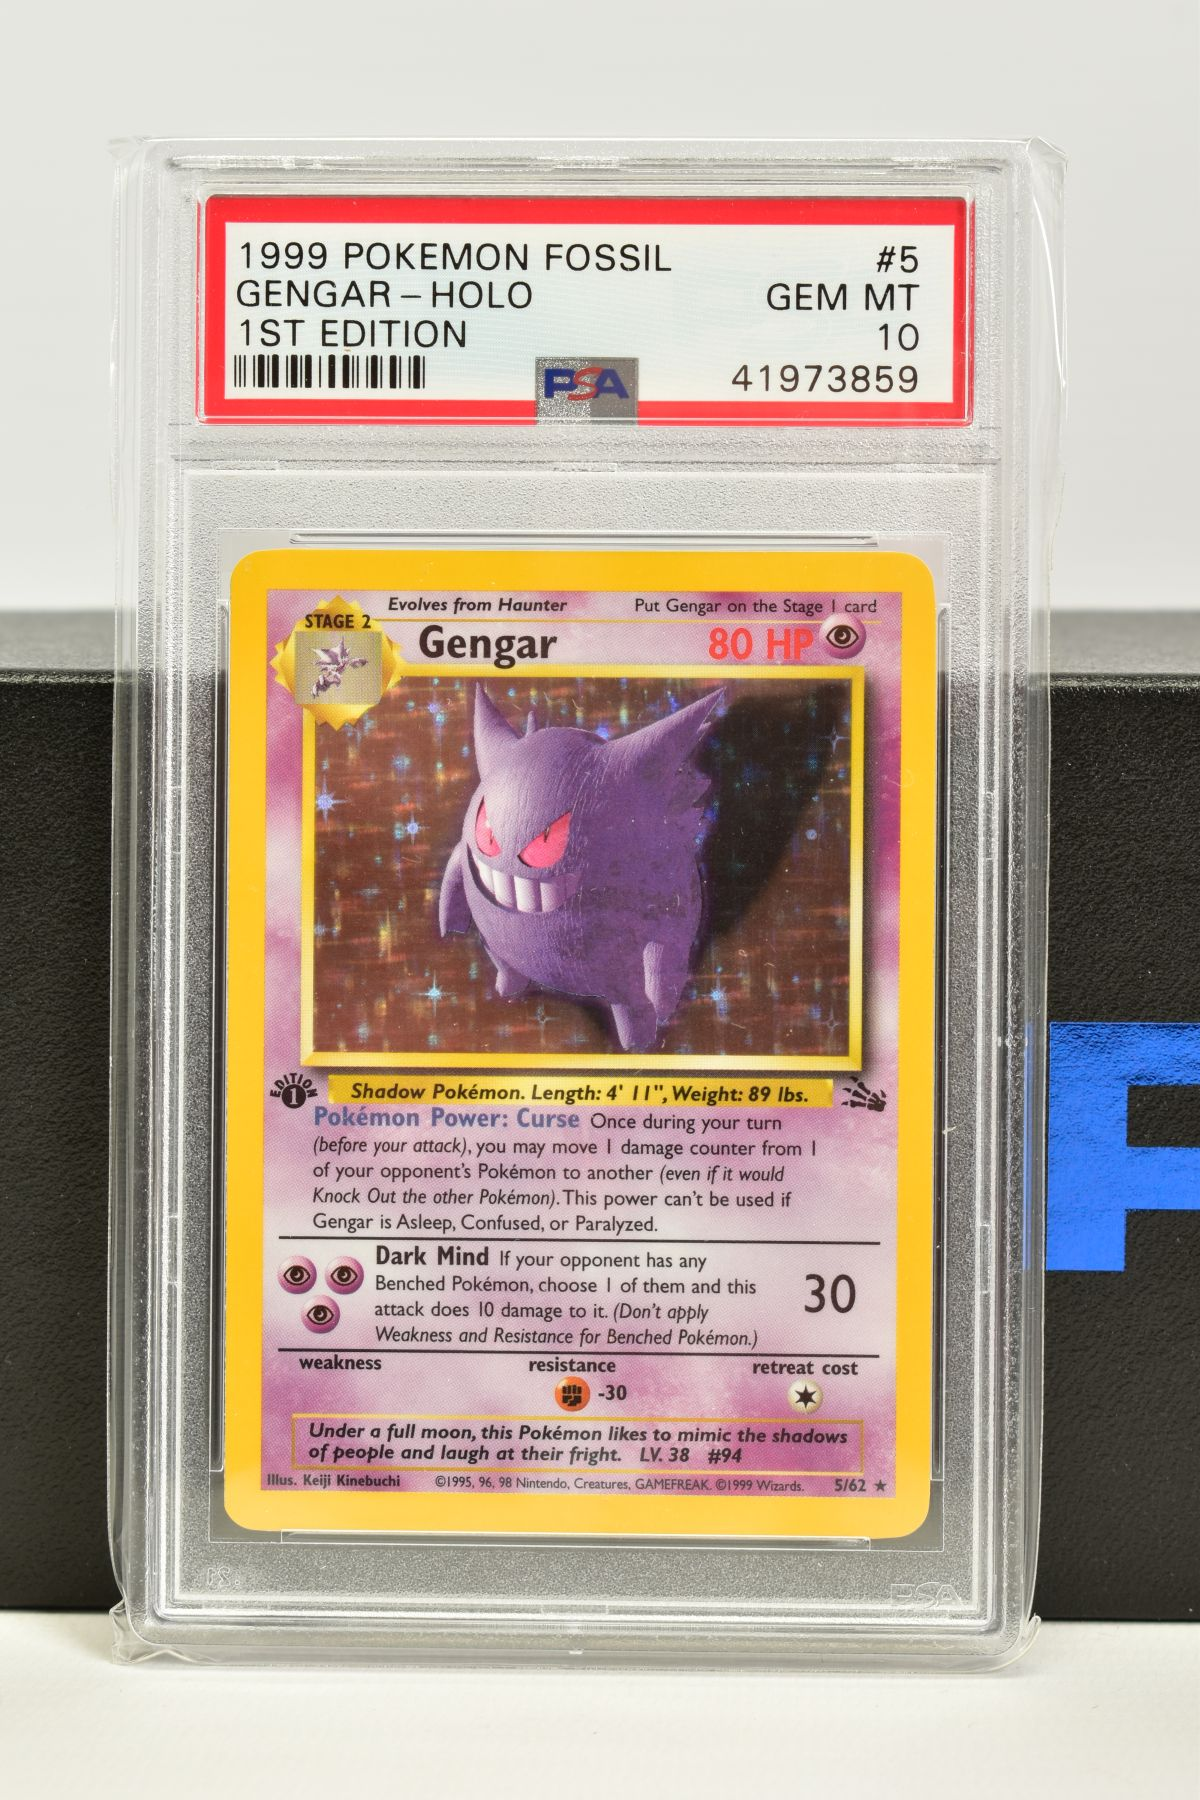 A PSA GRADED POKEMON 1ST EDITION FOSSIL SET GENGAR HOLO CARD, (5/62), graded GEM MINT 10 and